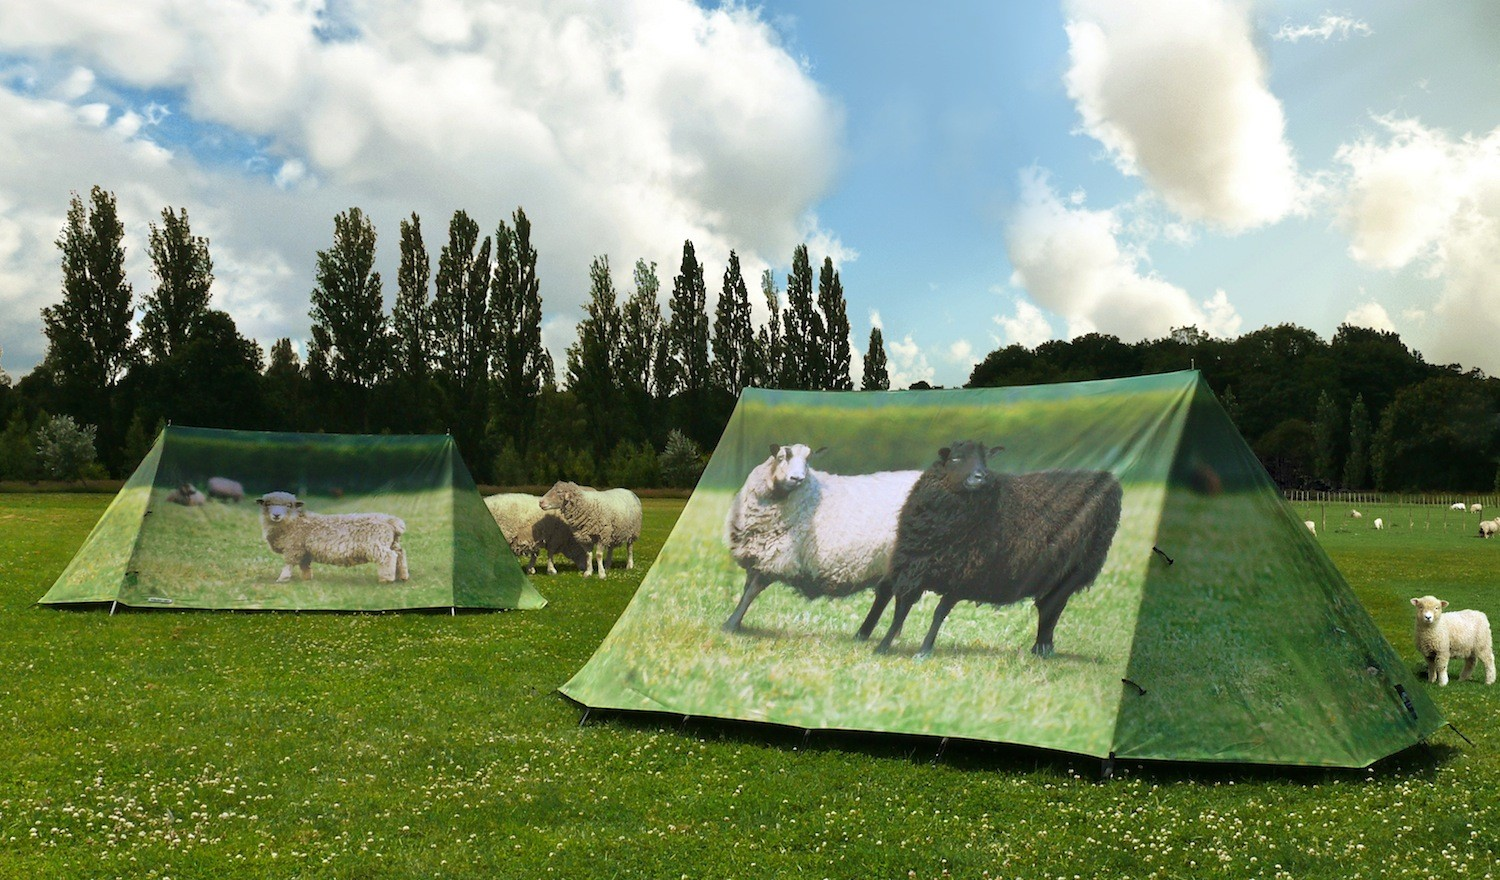 "[lnk url=""http://www.fieldcandy.com/animal-farm-2-person-sheep-tent.html""]Zdroj: FieldCandy[/lnk]"